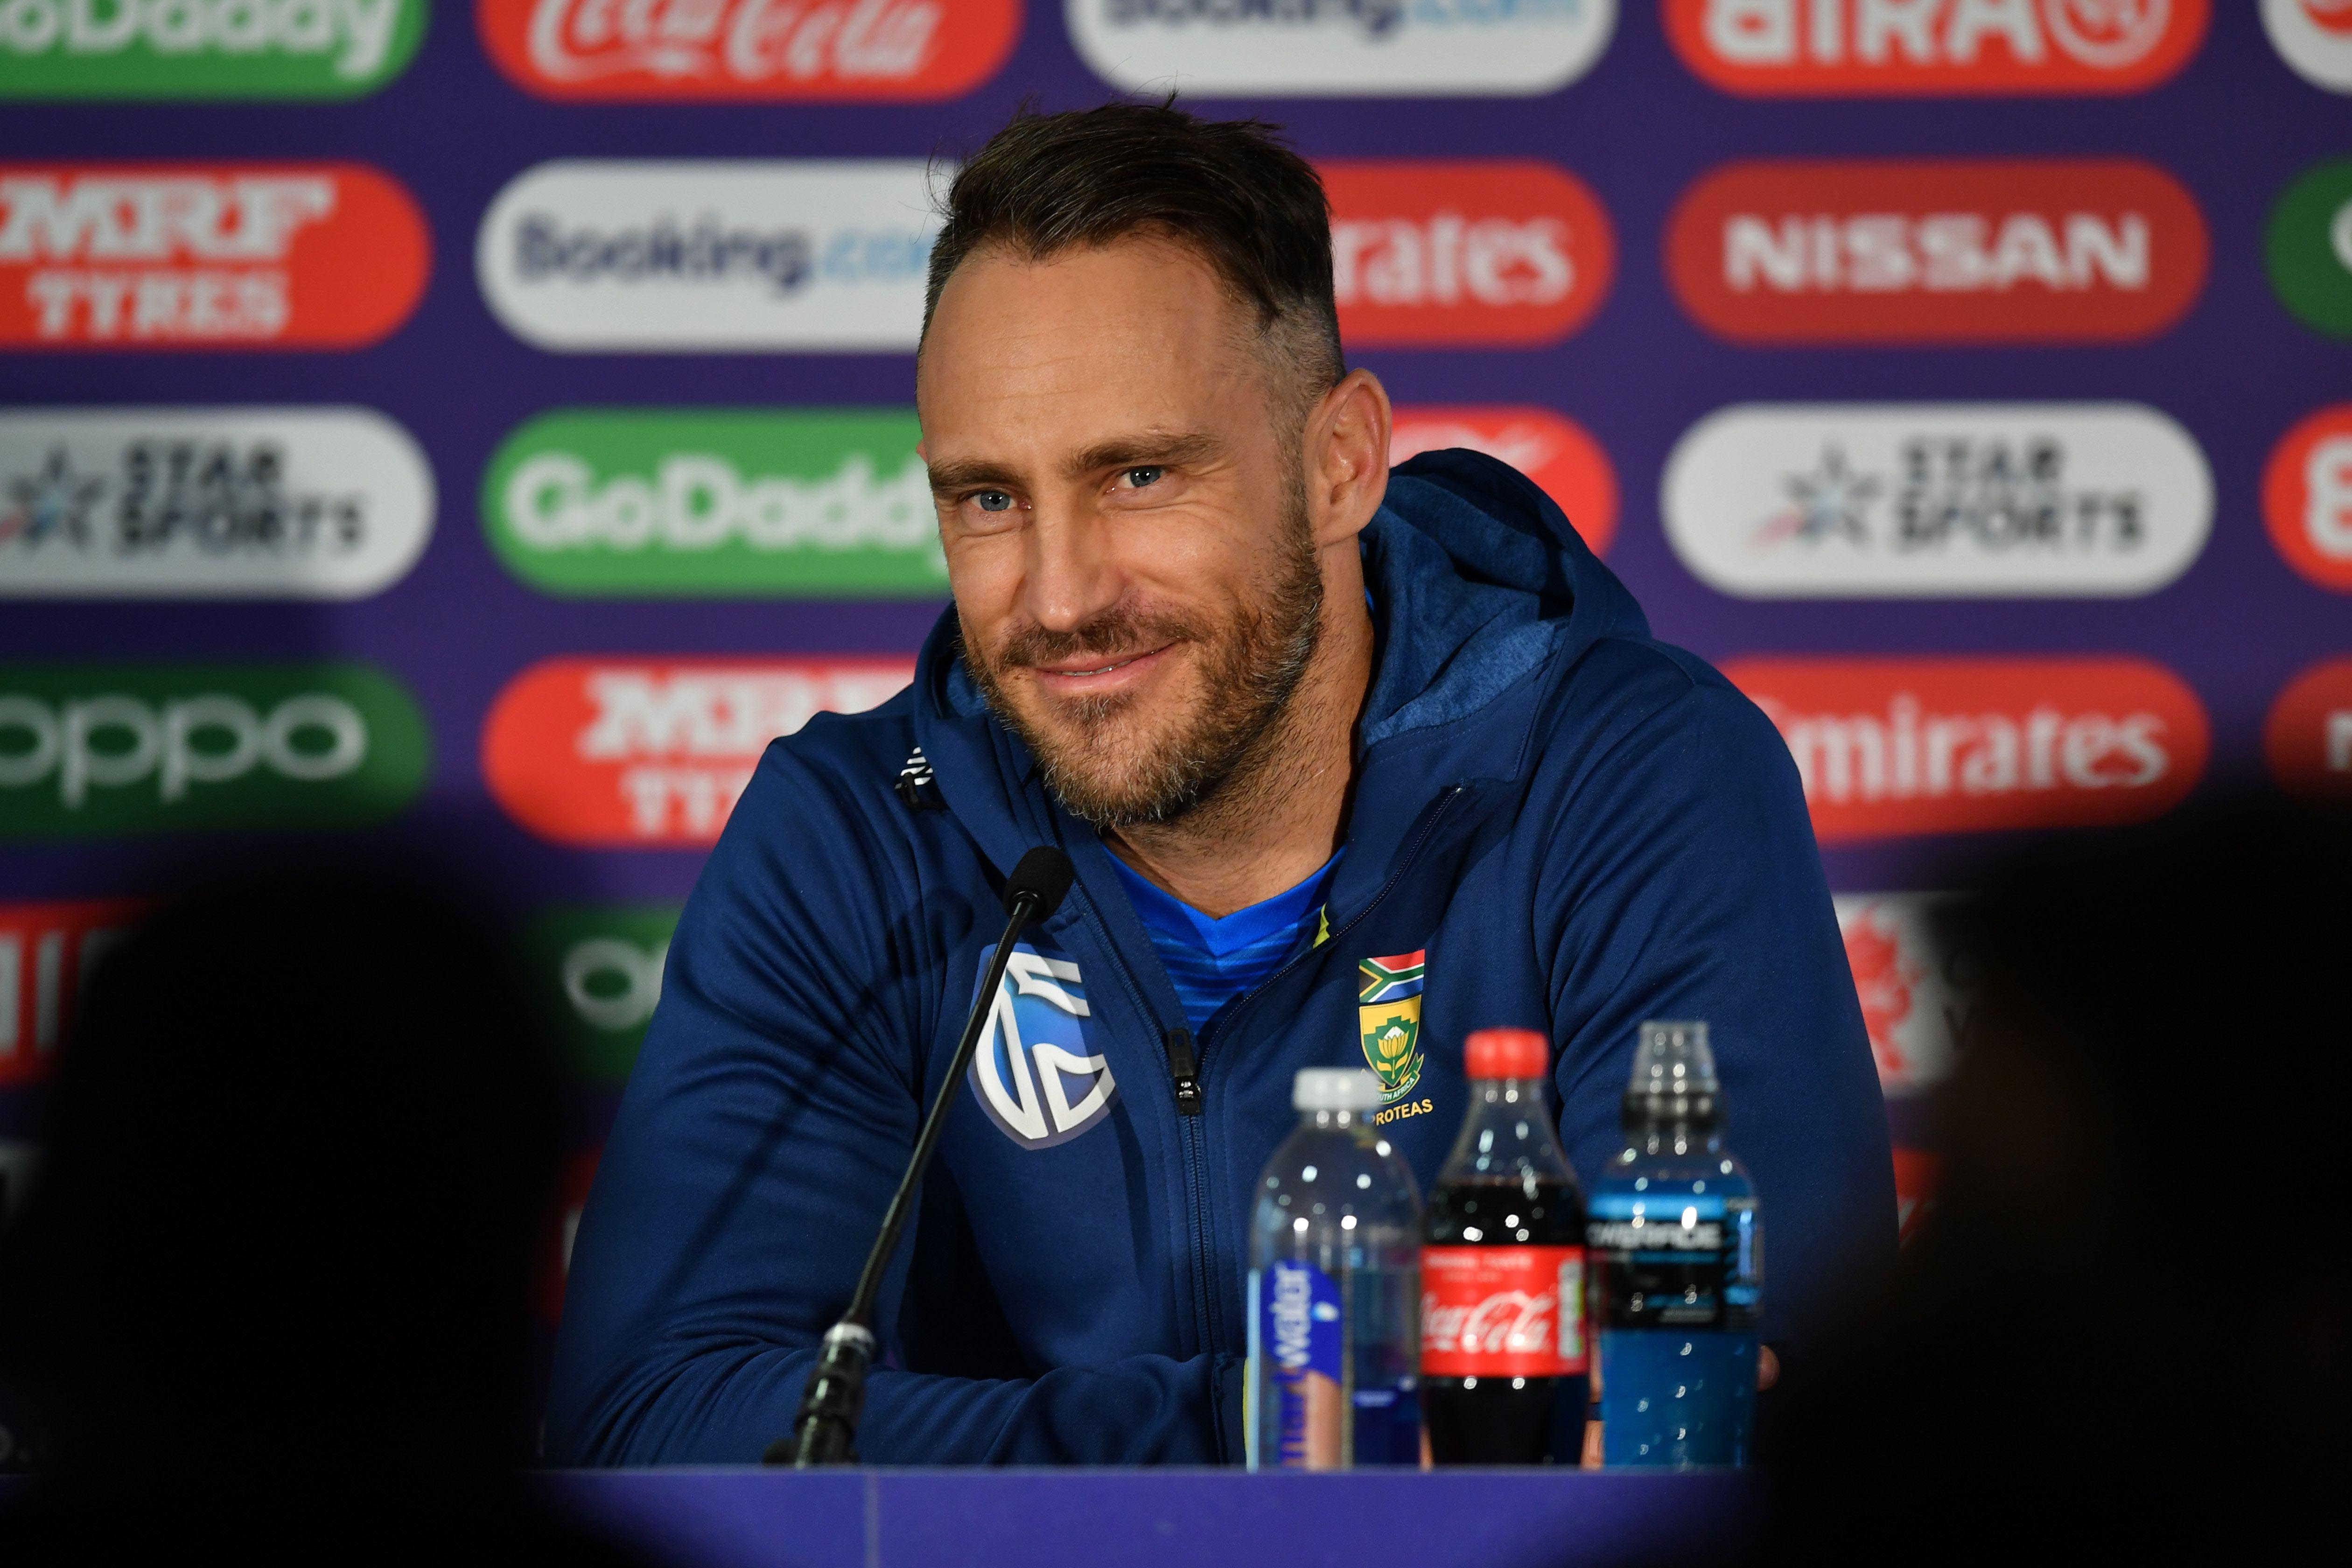 South Africa vs Afghanistan: If we look back, it would be tough get out of the hole, says Faf du Plessis